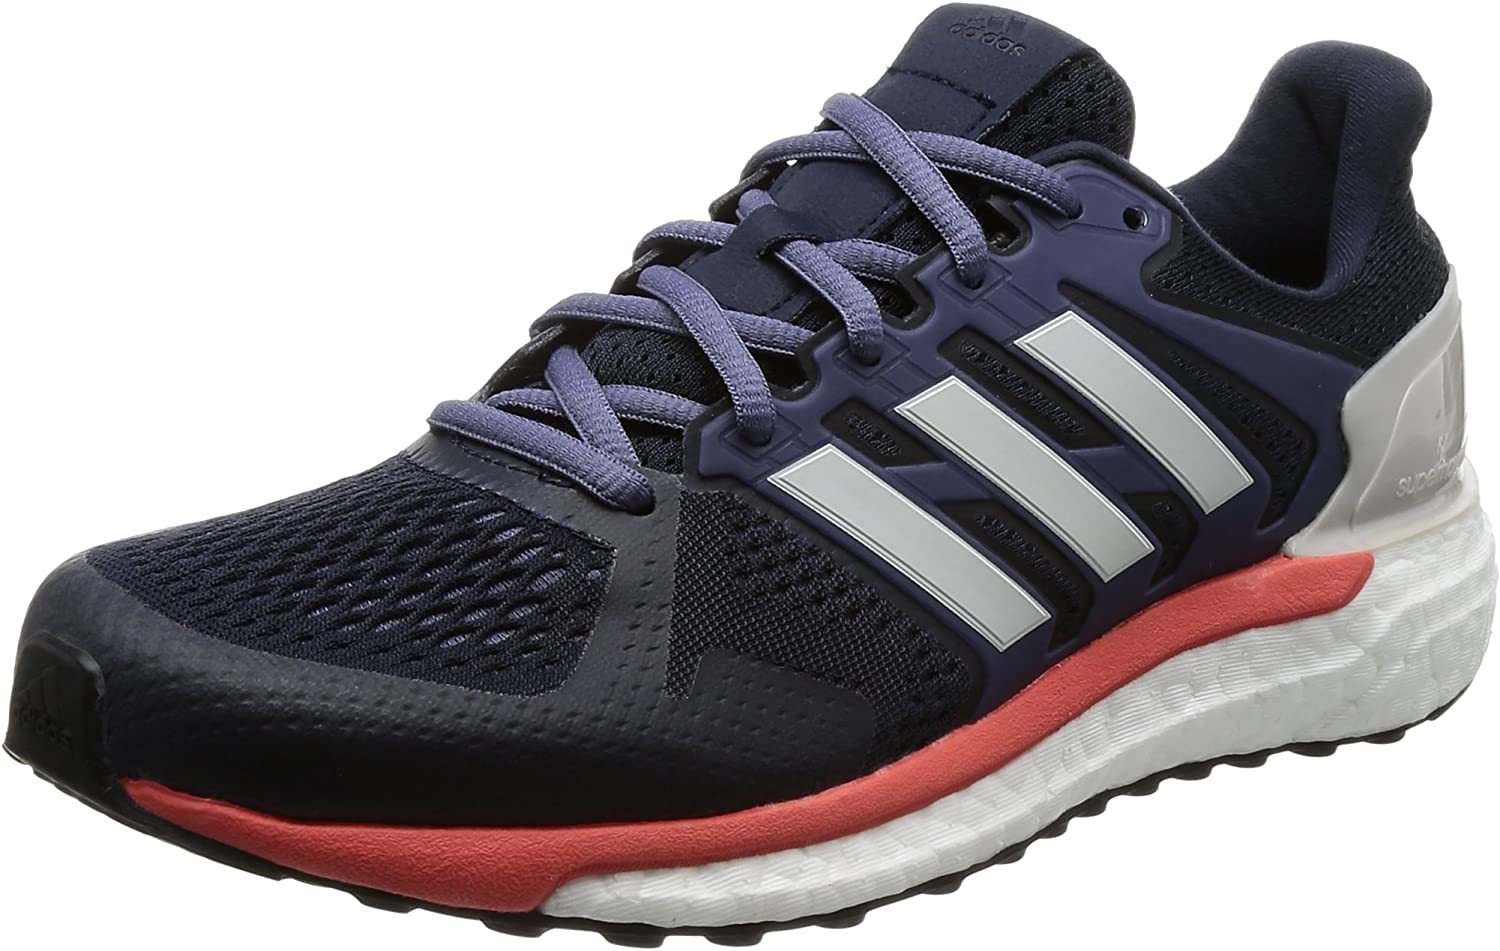 Supernova St Competition Running Shoes